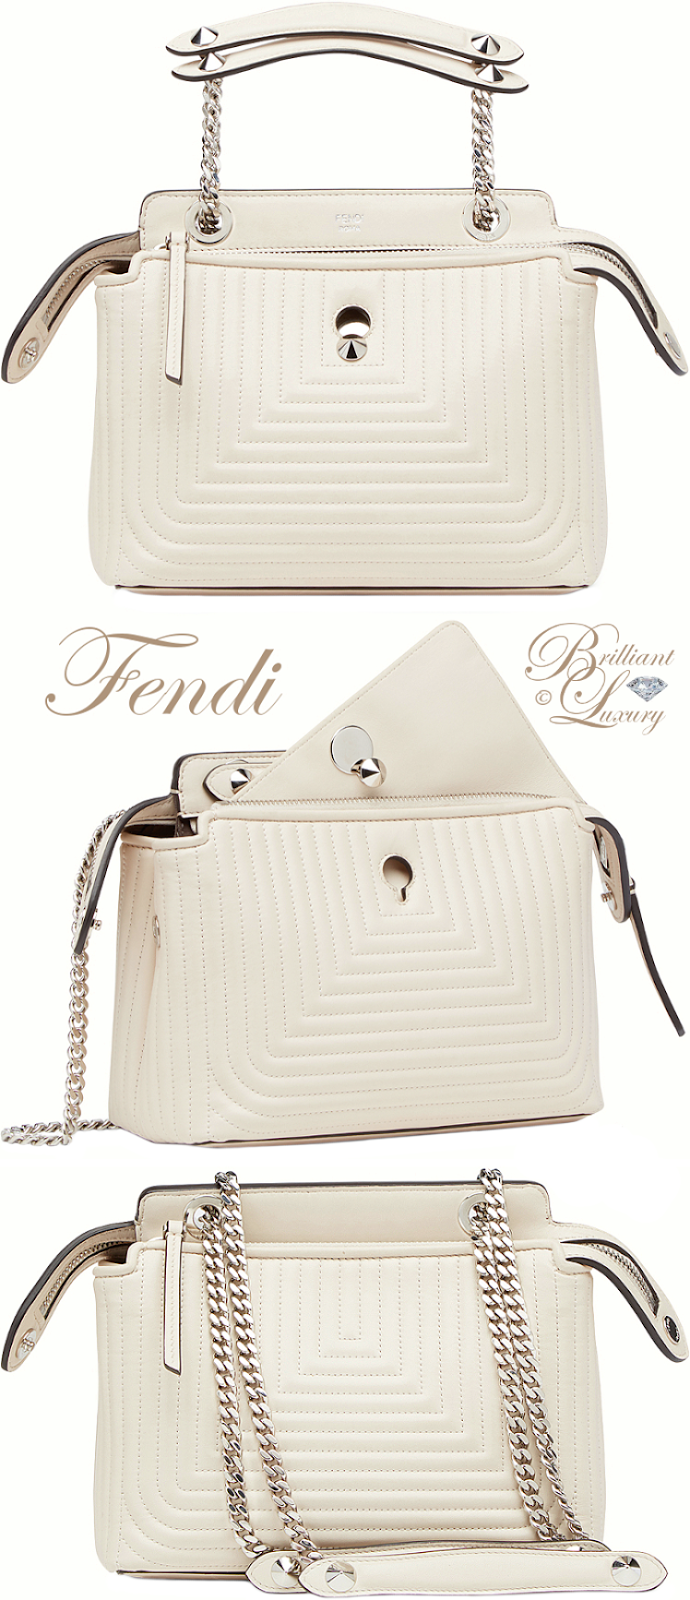 Brilliant Luxury ♦ Fendi Dotcom Click Handbag